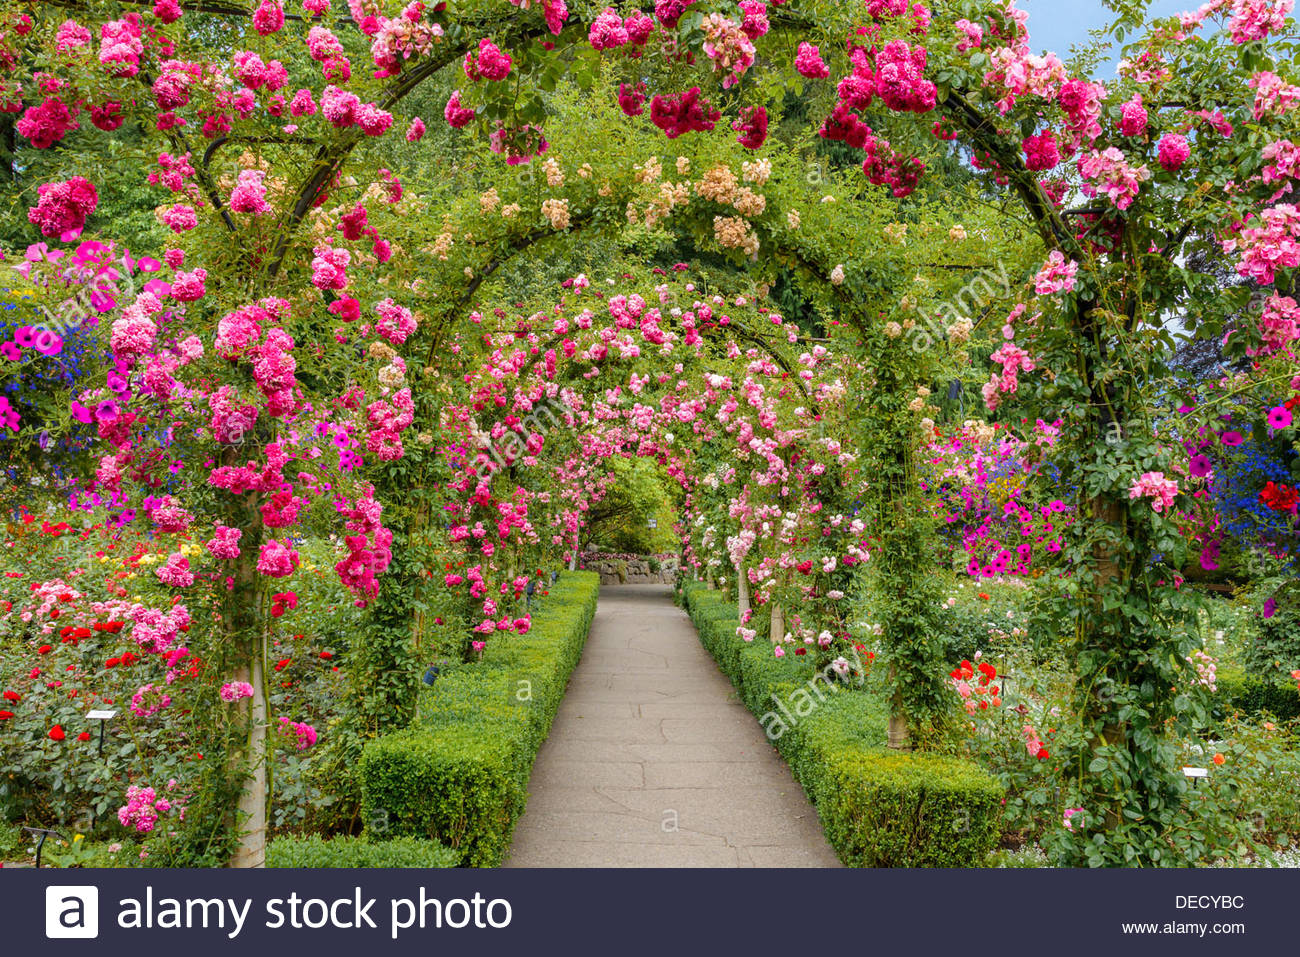 The rose garden butchart gardens brentwood bay near victoria the rose garden butchart gardens brentwood bay near victoria vancouver island british columbia canada thecheapjerseys Choice Image